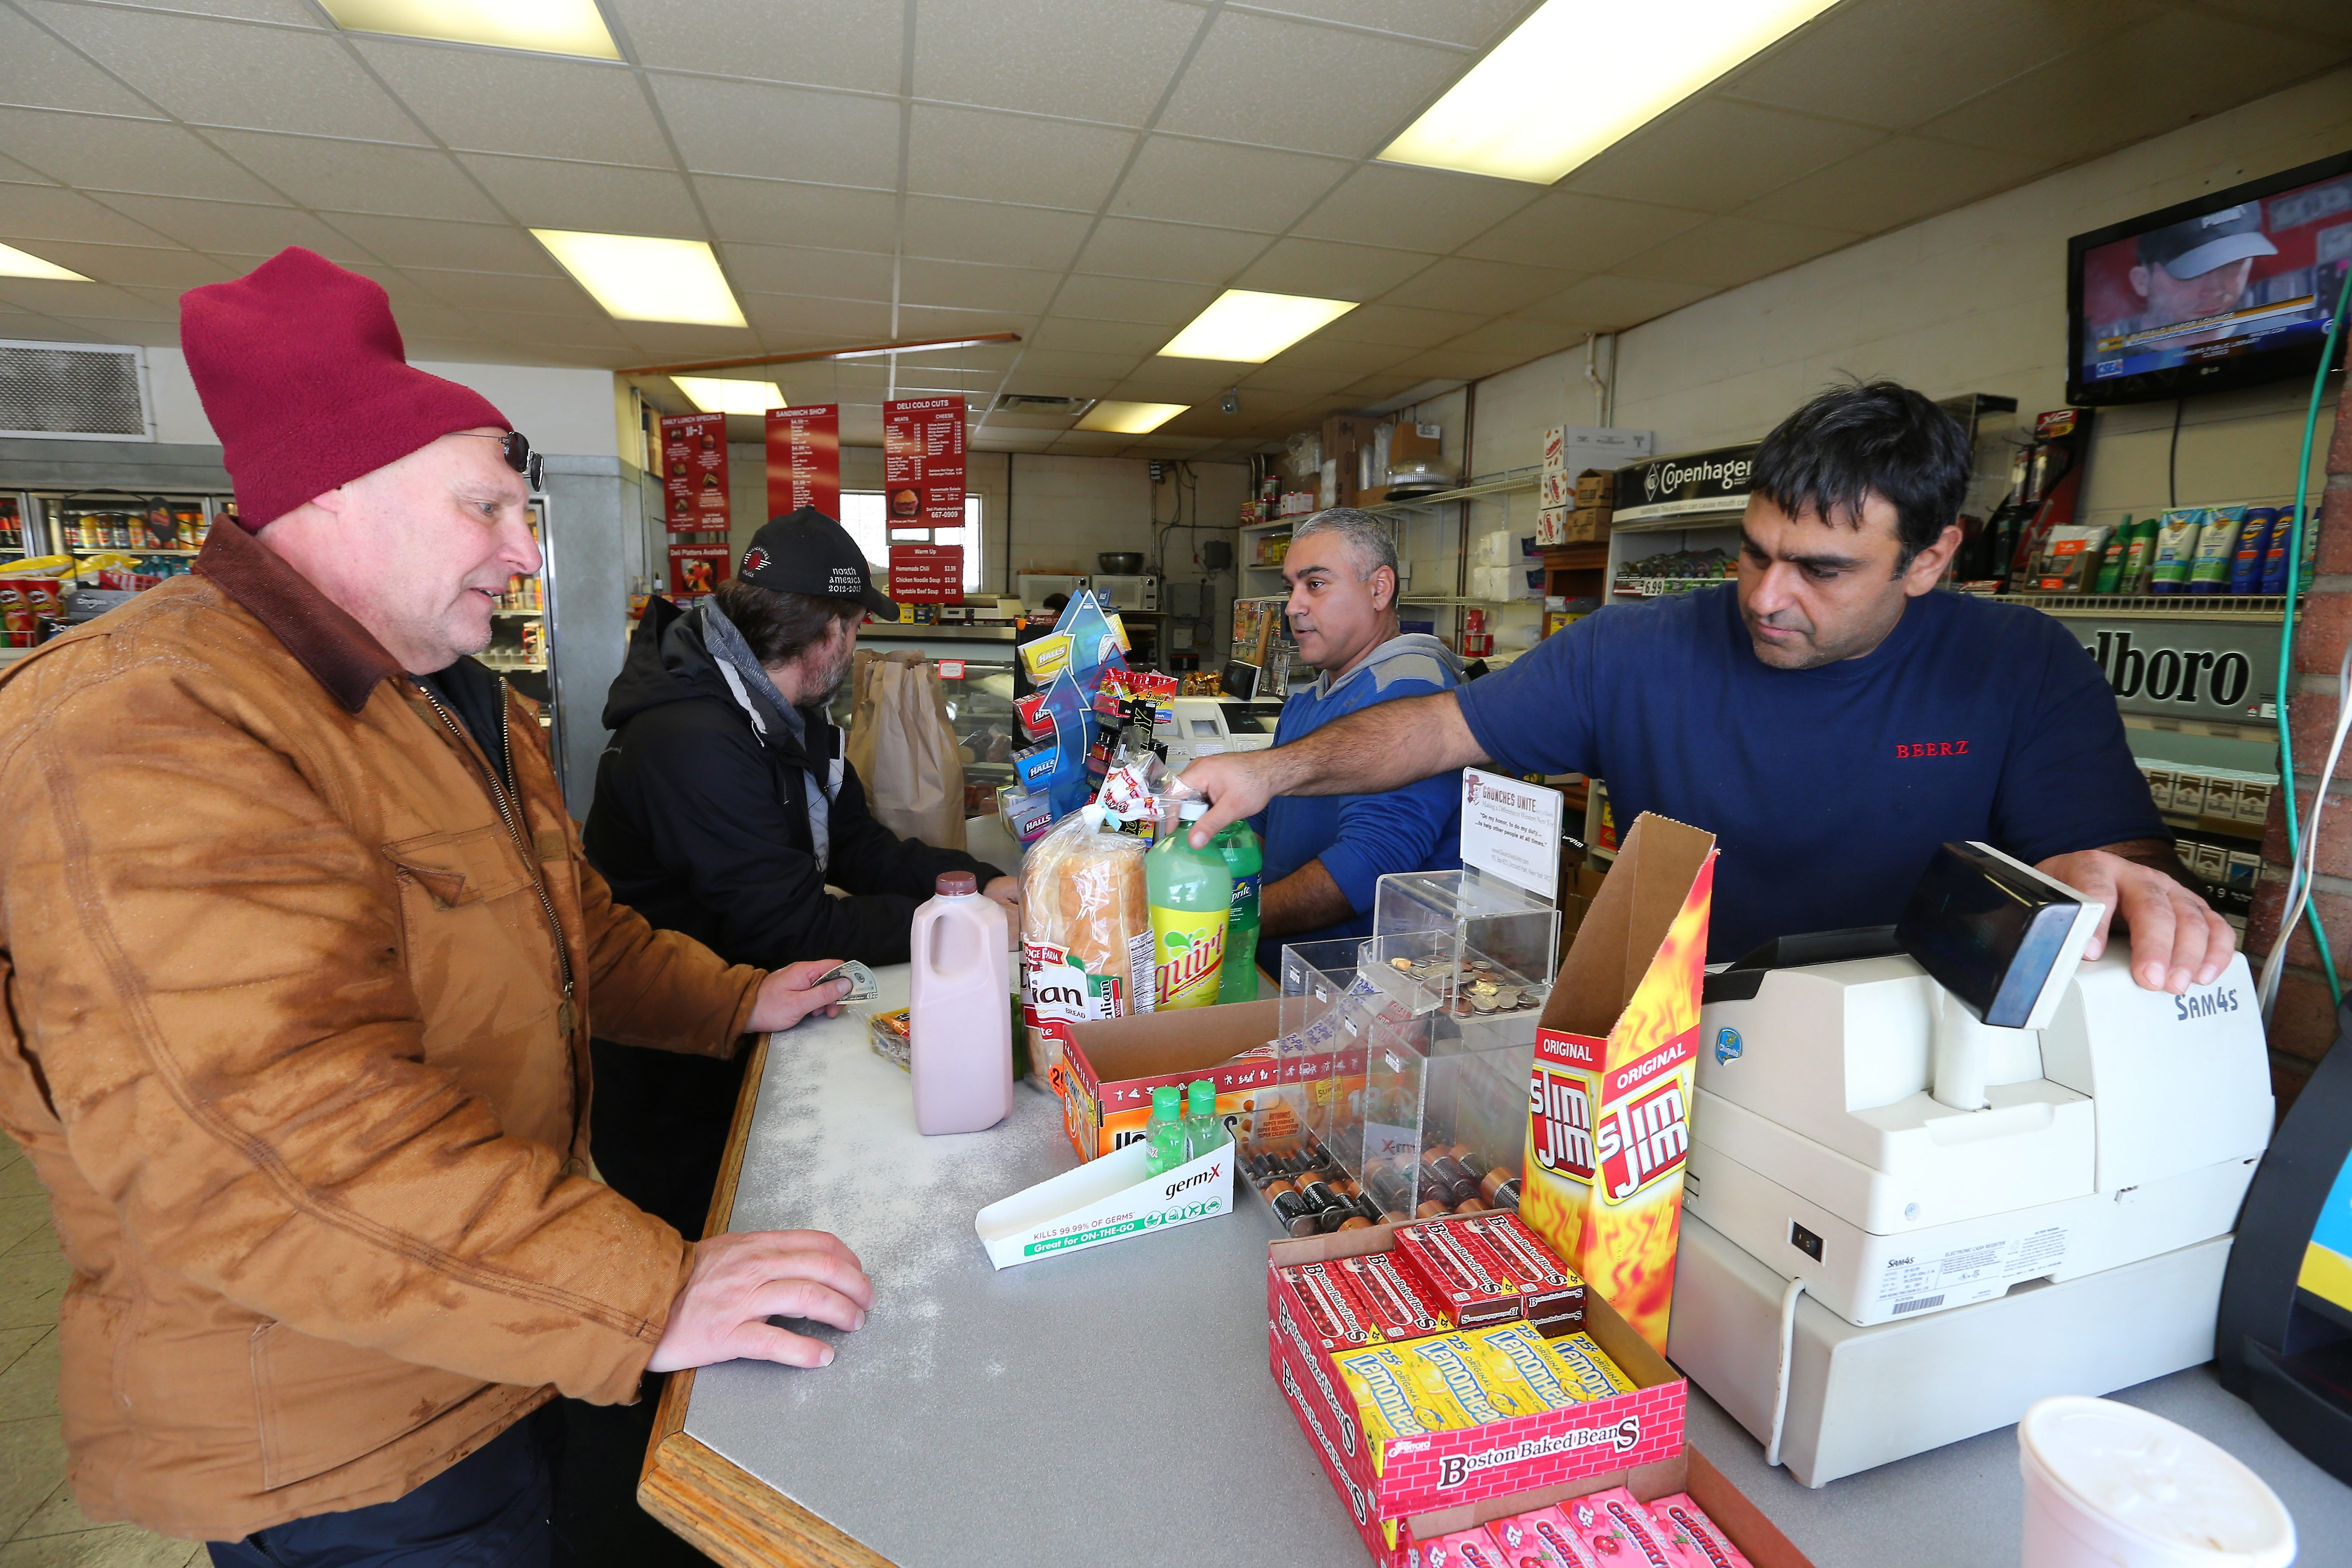 Dan Khangi, right, and his brother George, left, wait on customers at Beerz in Orchard Park Friday. Things are starting to return to normal at area grocery stores and markets as warehouses have reopened and delivery trucks have resumed running.